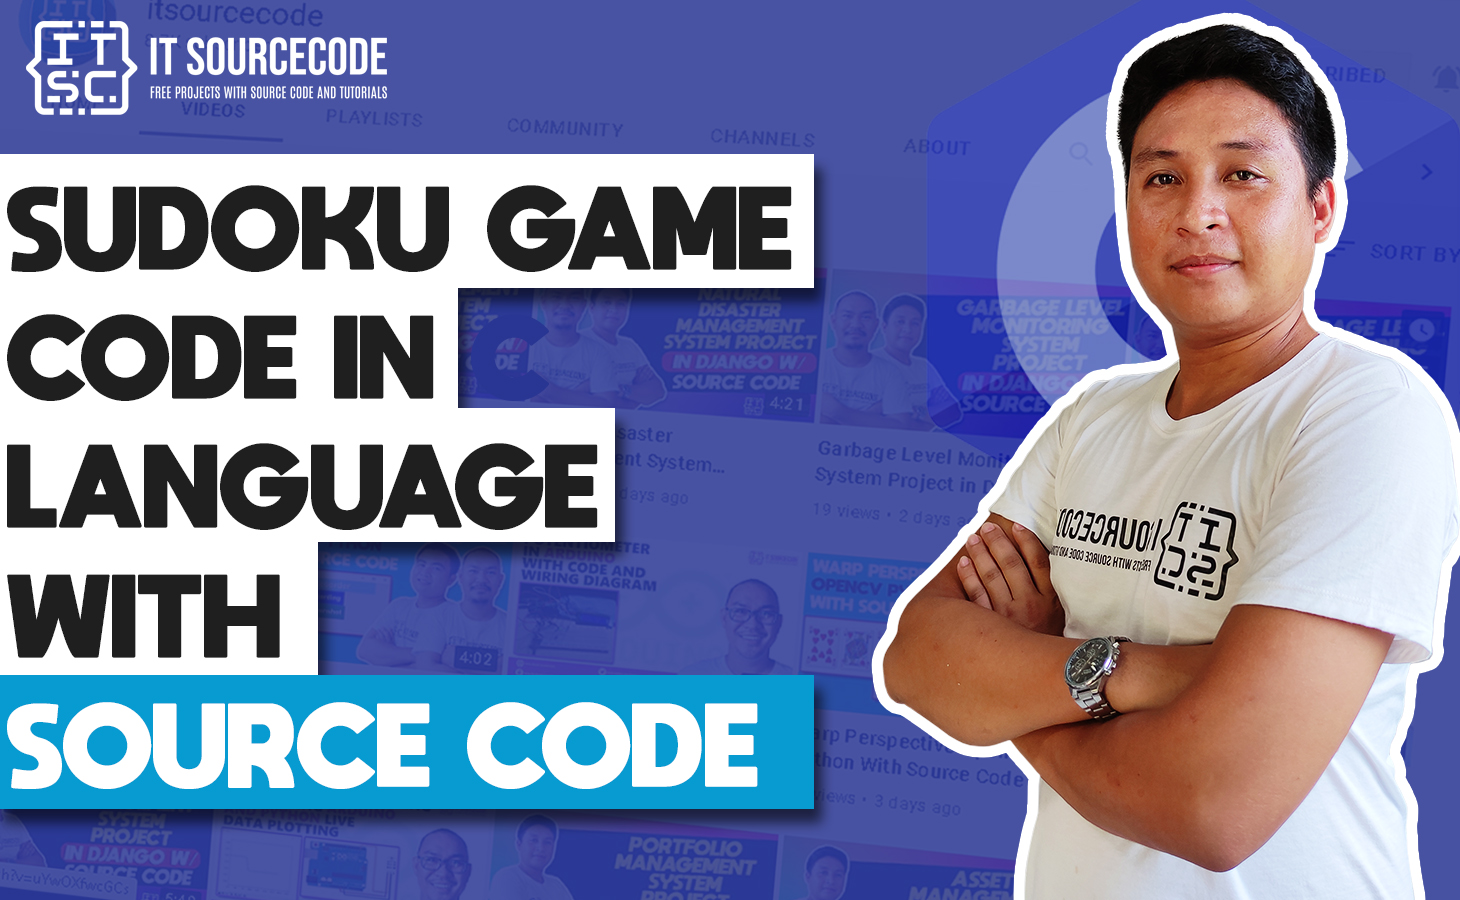 Sudoku Game Code in C Language with Source Code